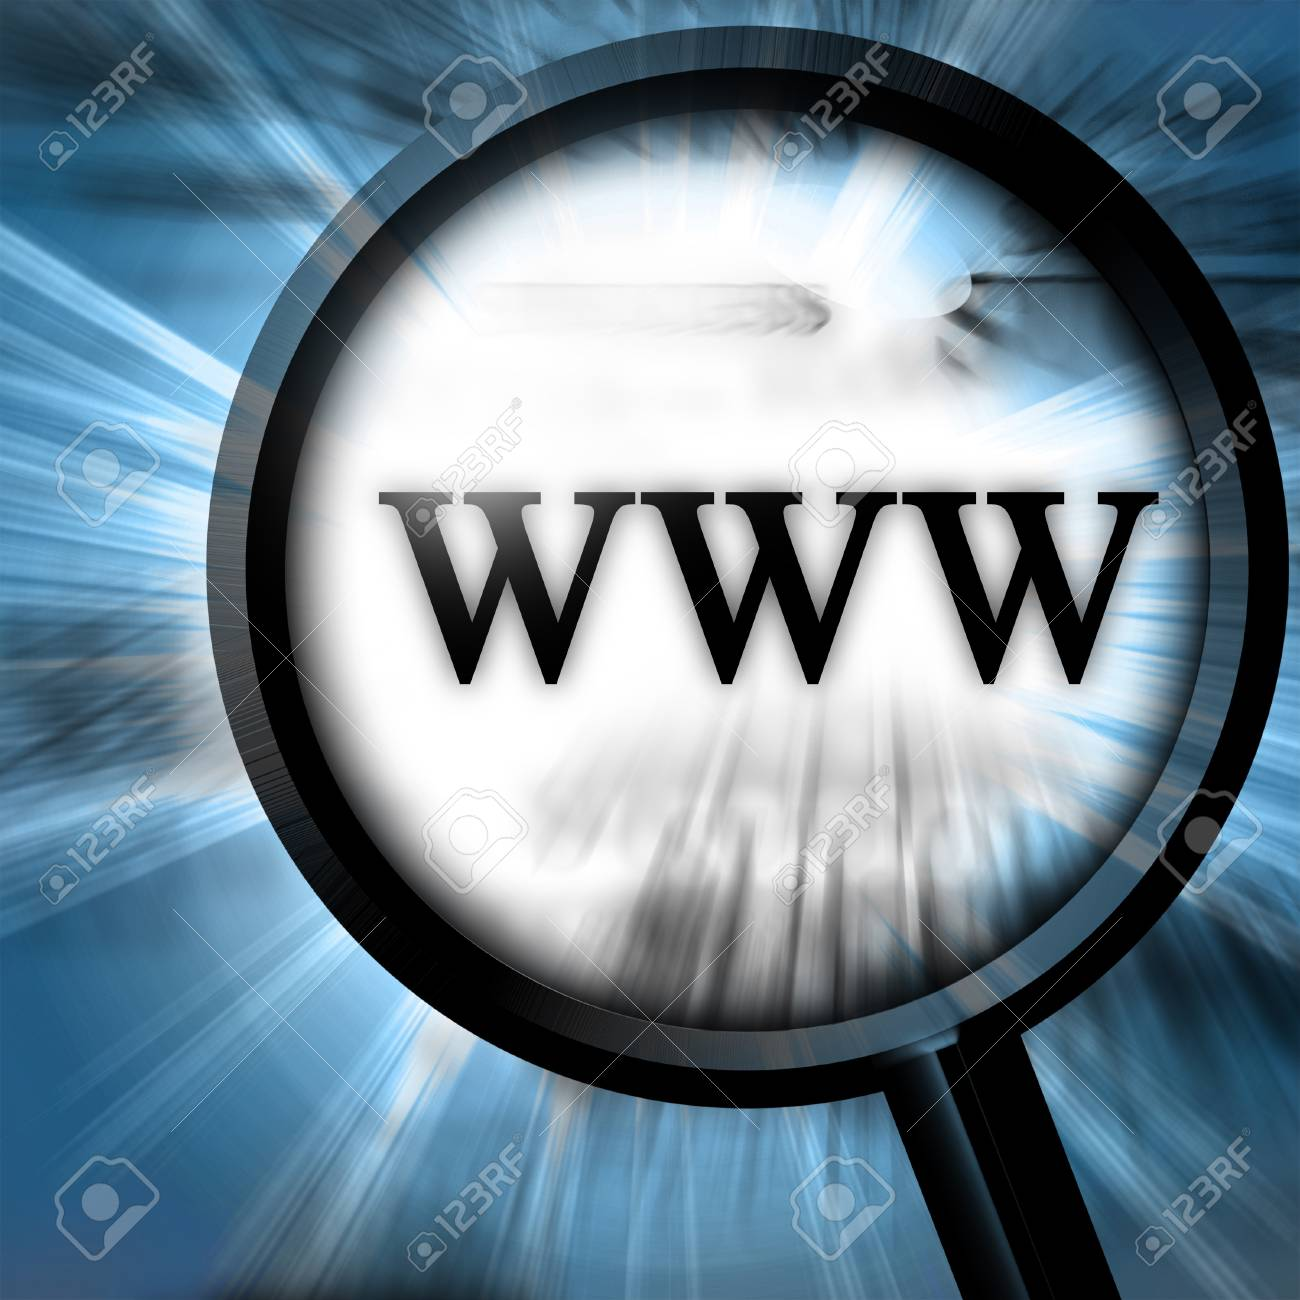 www on a blue background with a magnifier Stock Photo - 10342055